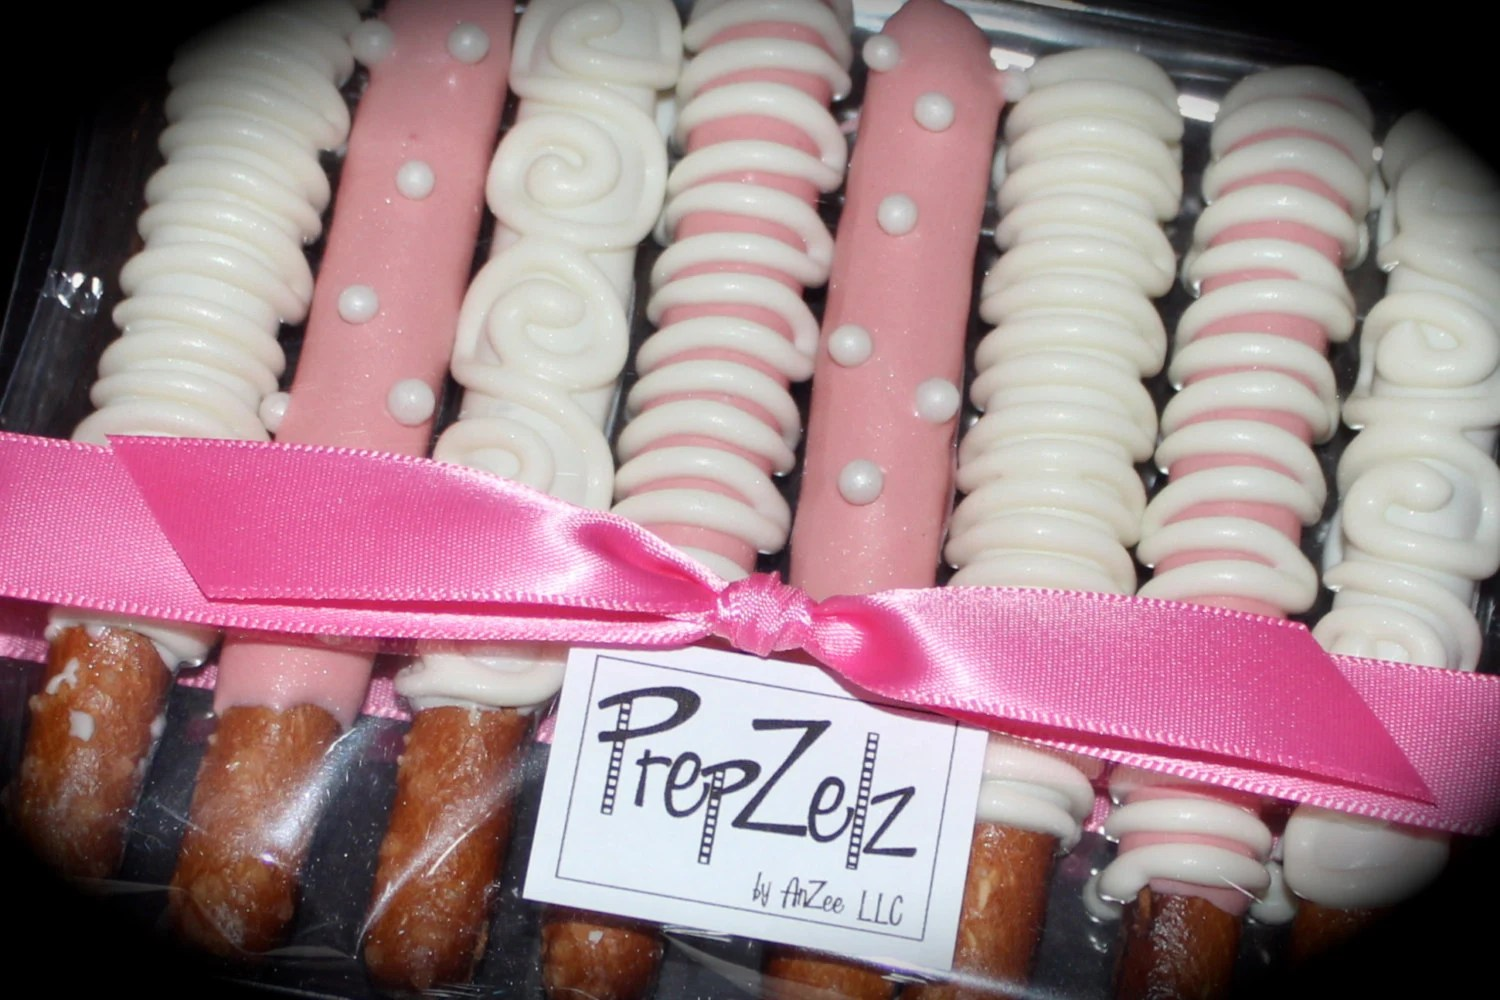 White Chocolate Covered Pretzel Rods - 8 pack of medium rods